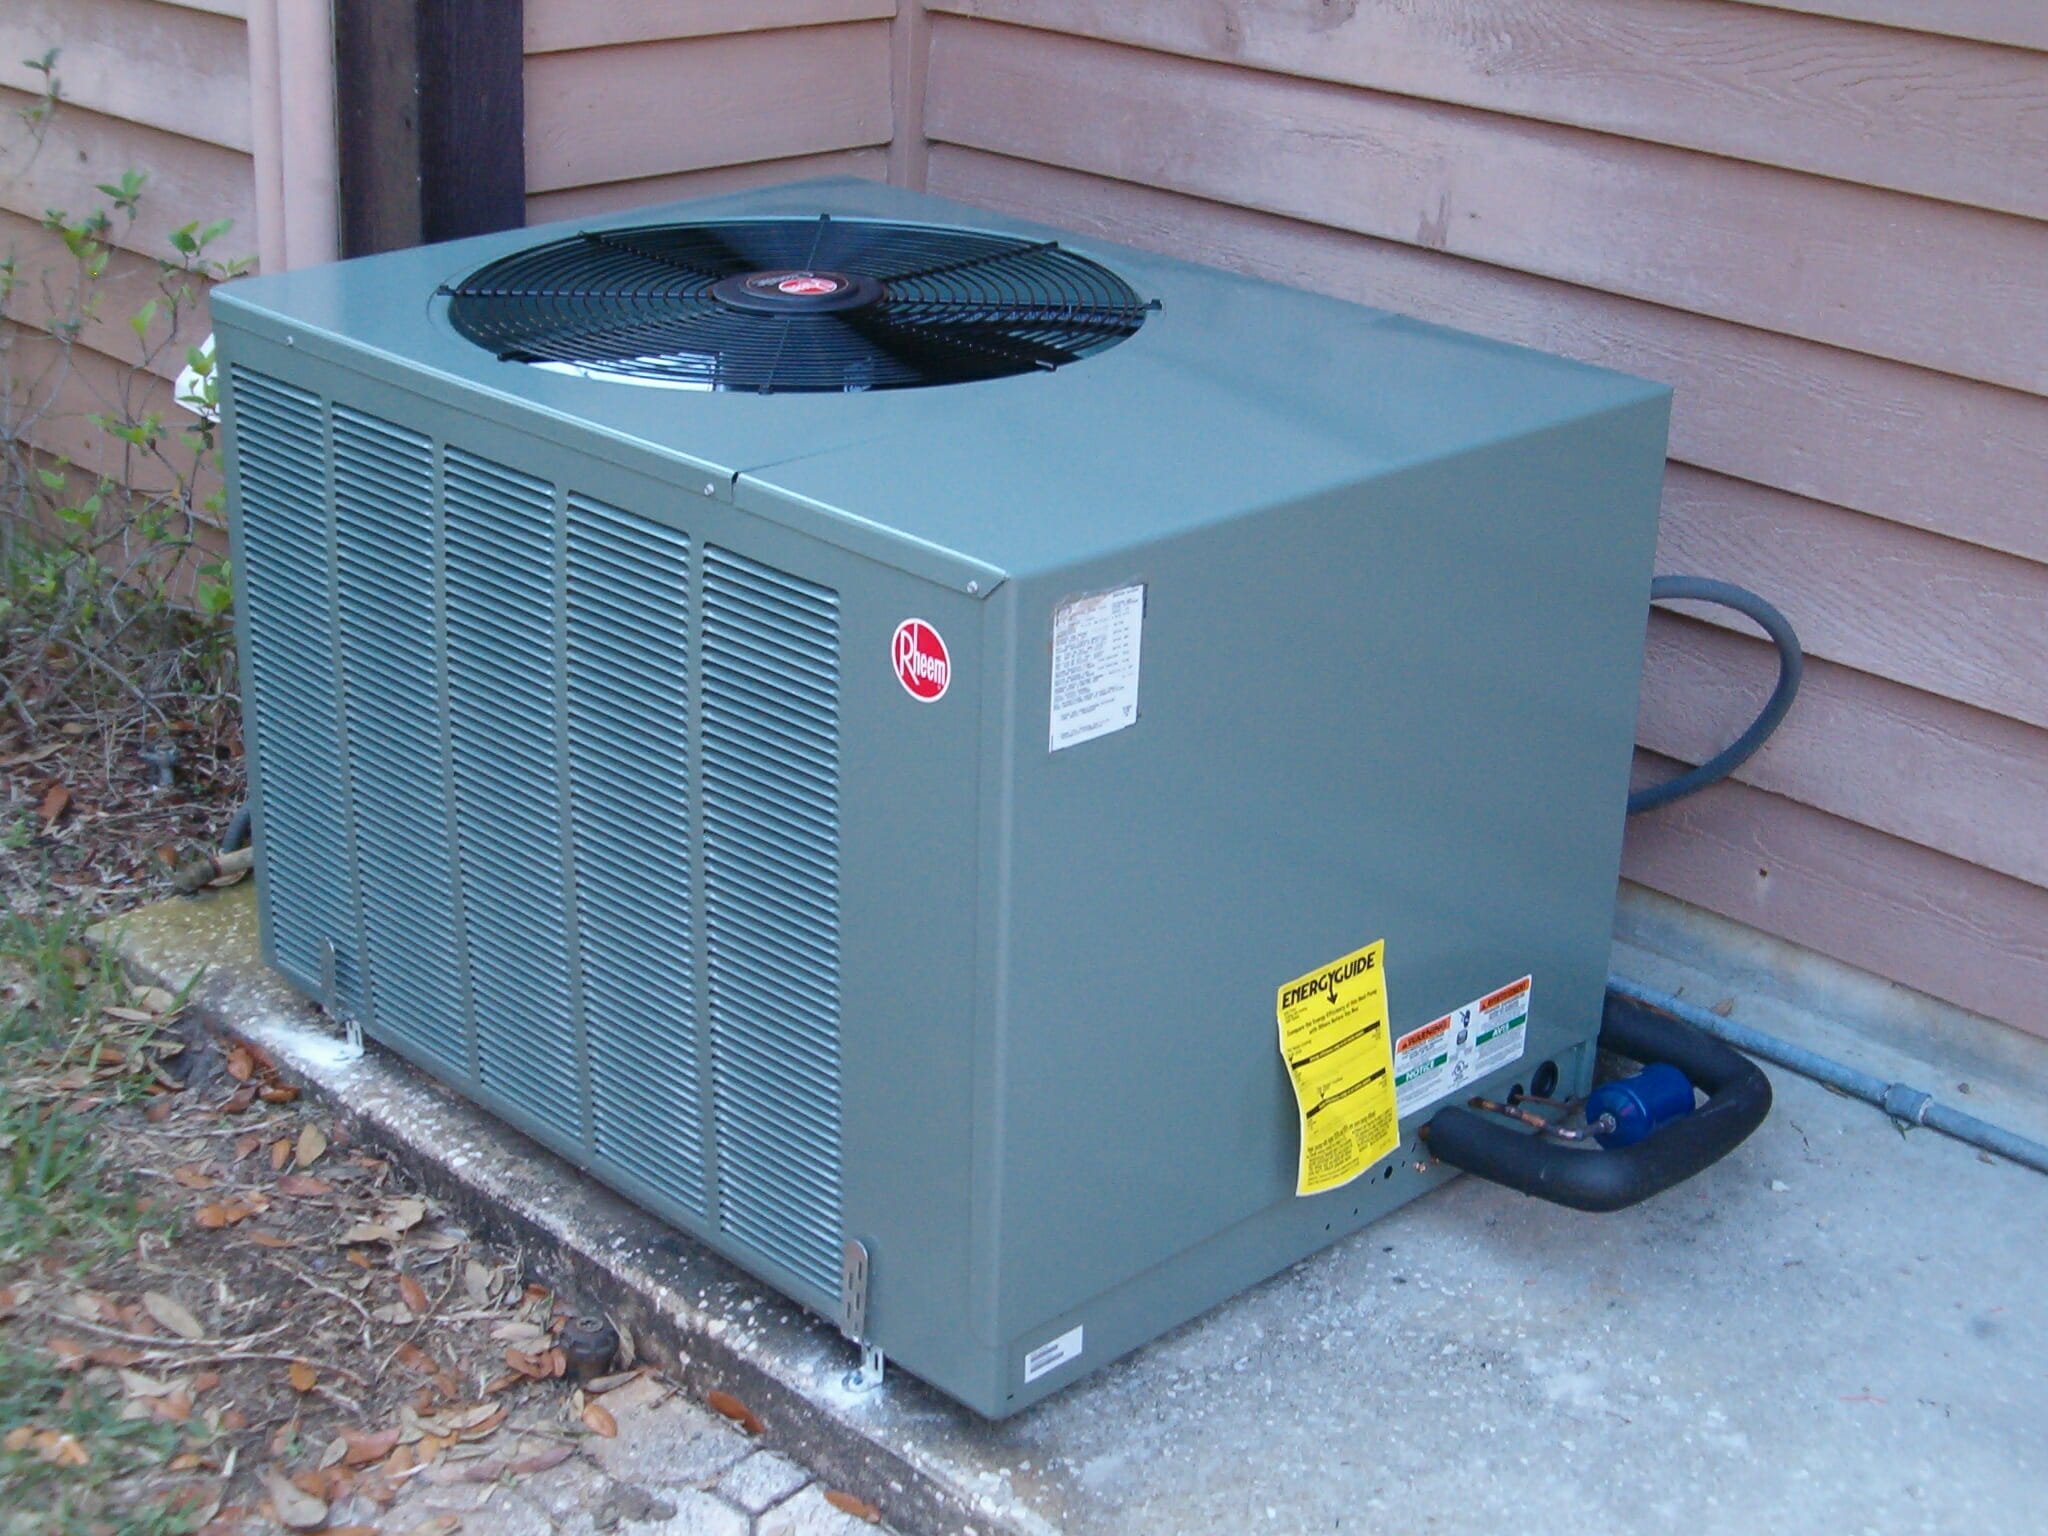 #3F678C Rheem HVAC Units Compare Prices & Save Modernize Recommended 2707 Energy Star Heating pics with 2048x1536 px on helpvideos.info - Air Conditioners, Air Coolers and more